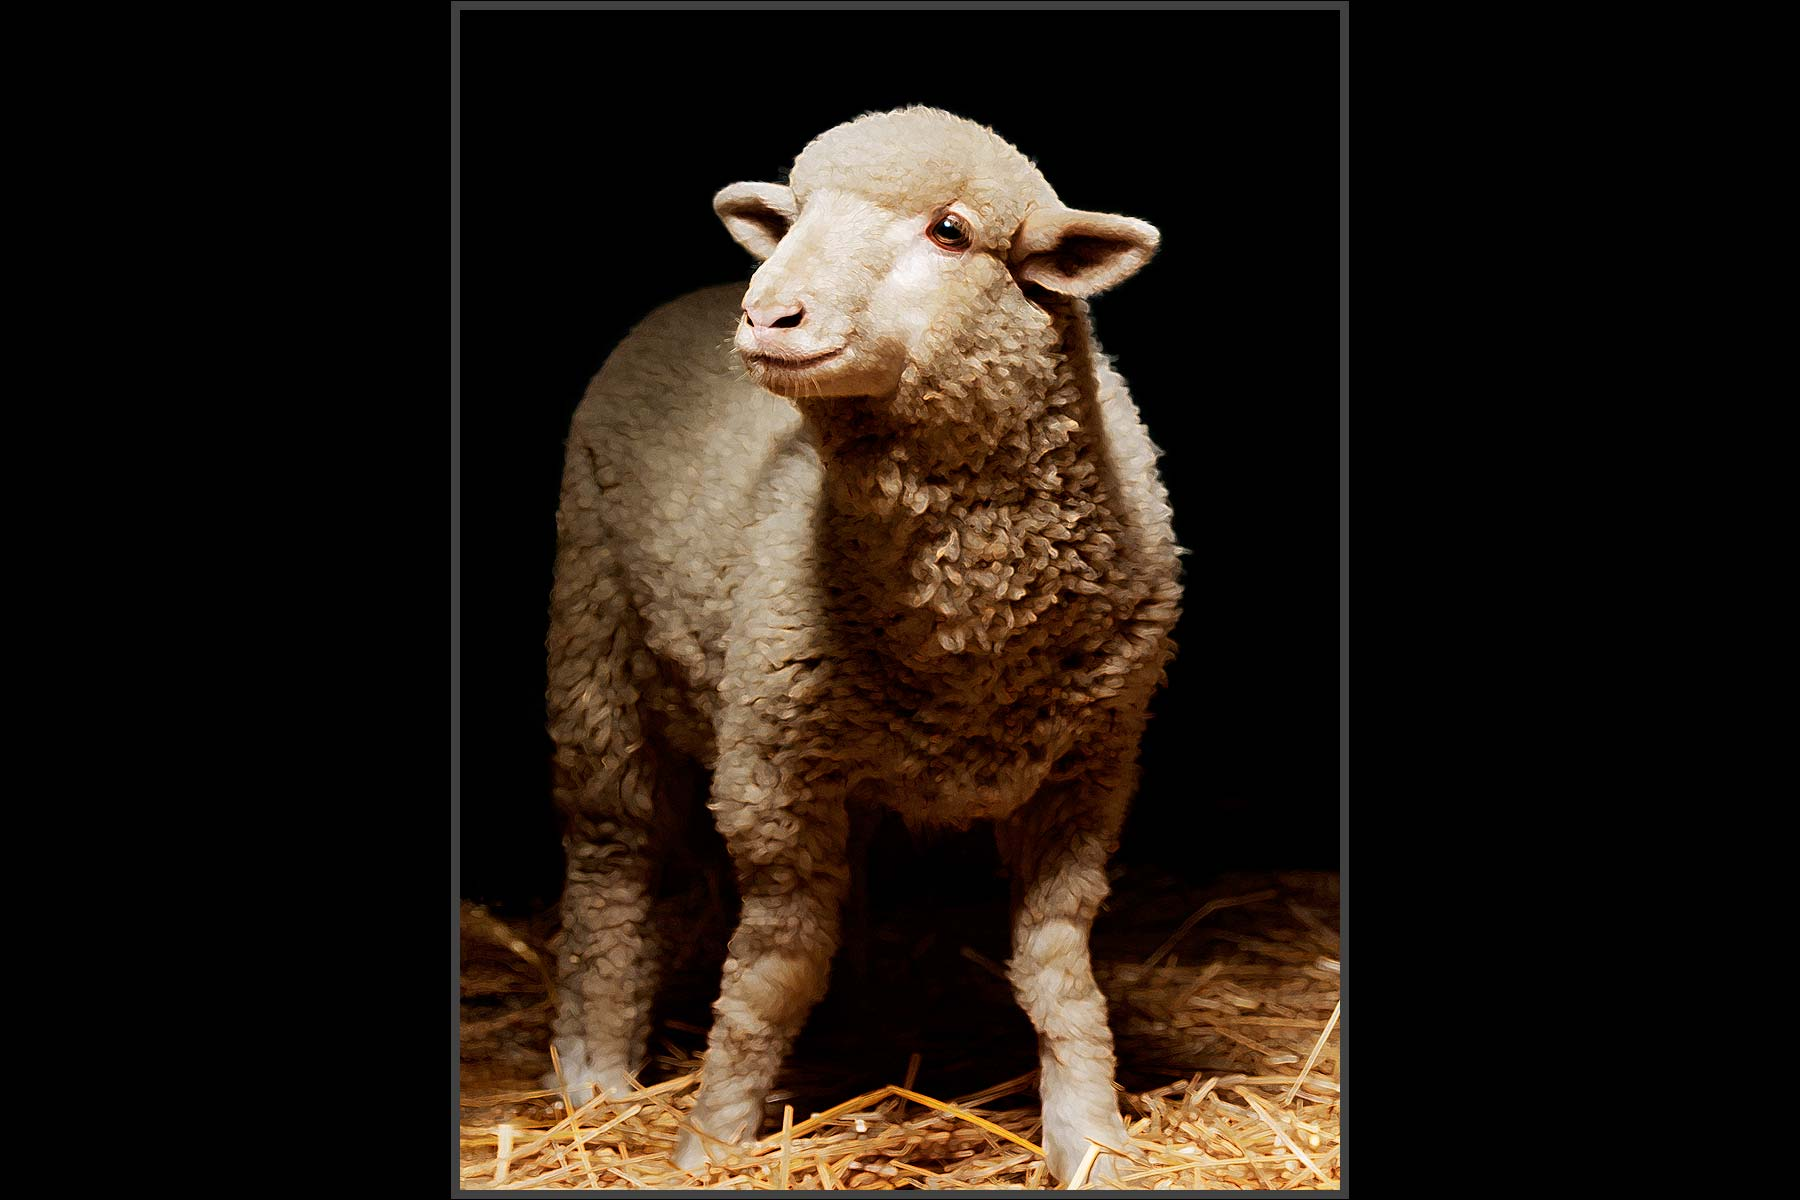 Farm Animal Portrait, Mekka | A Rescued Lamb